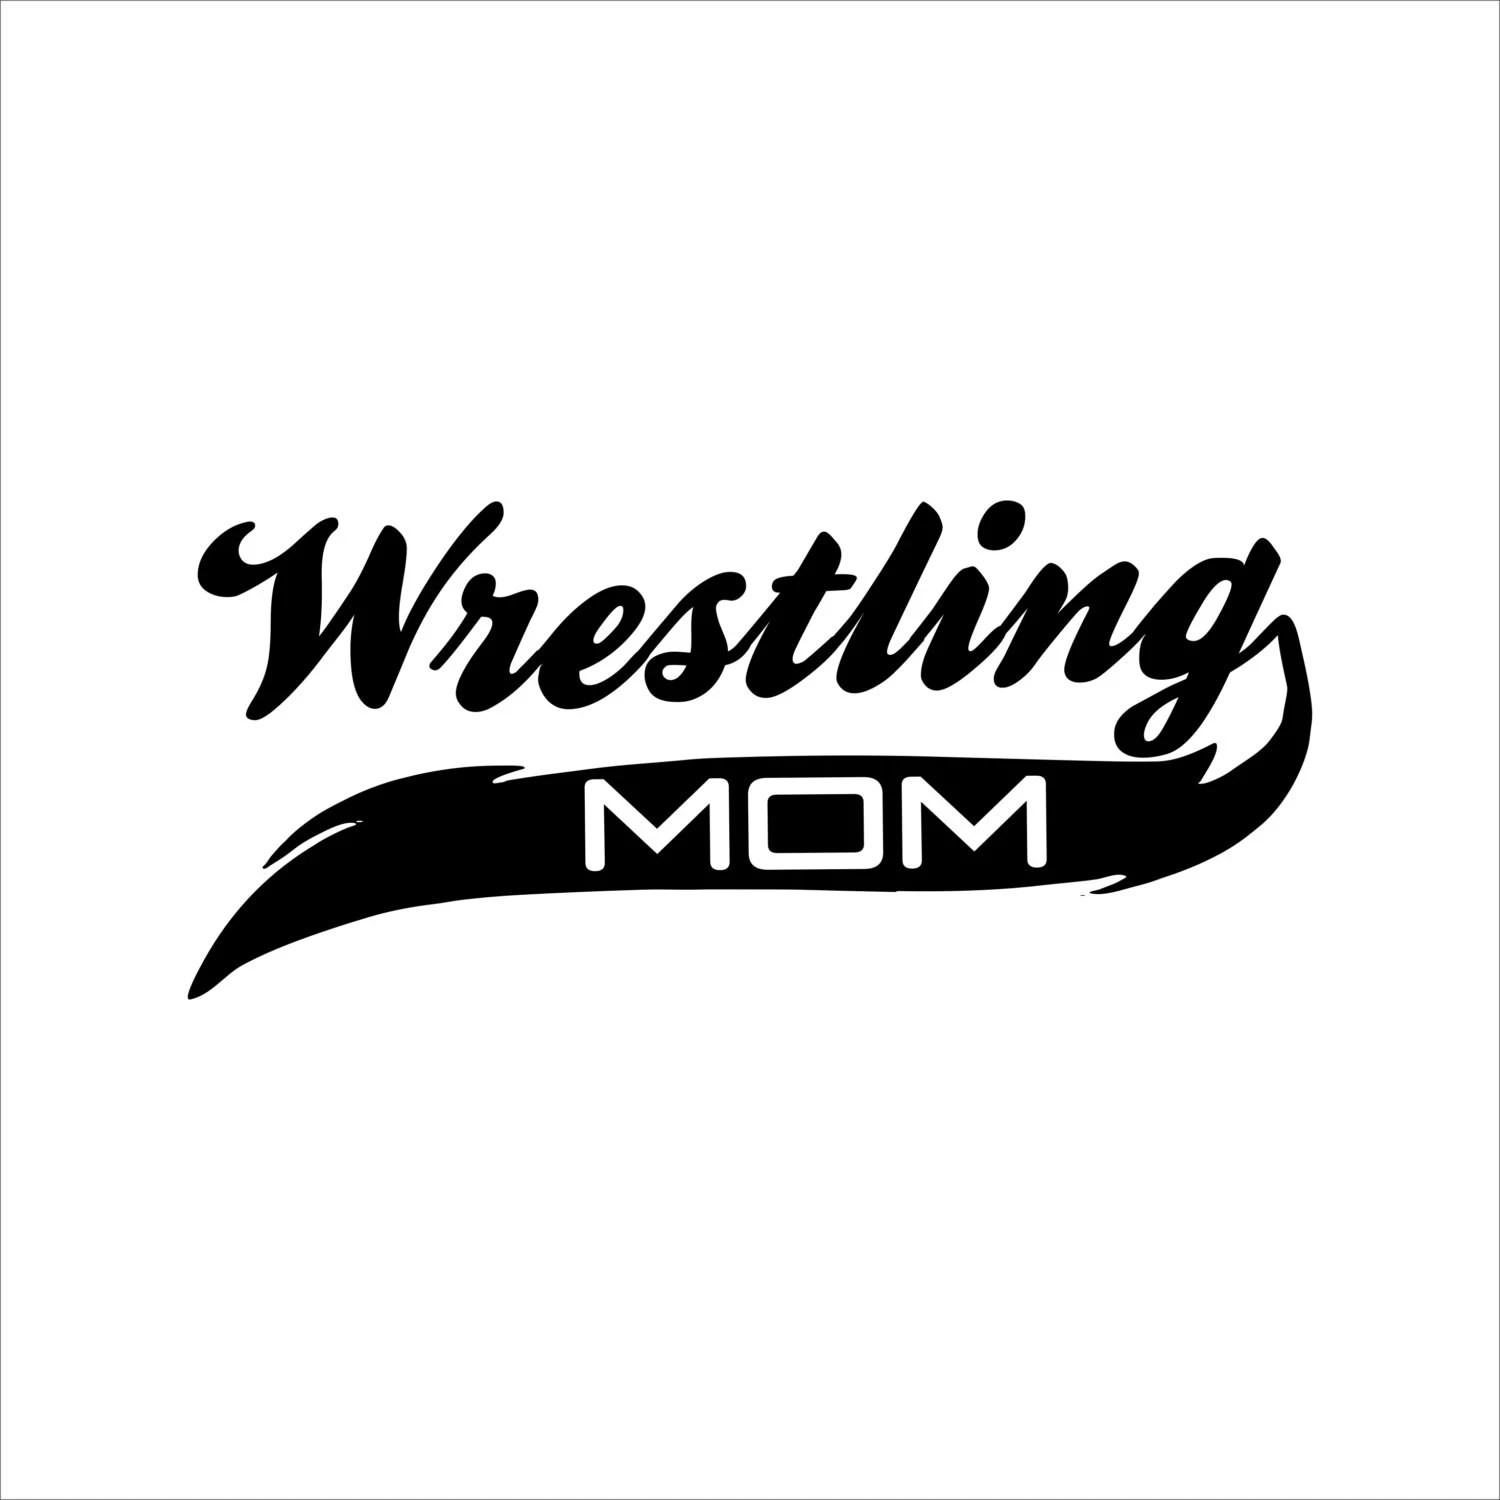 Personalized Wrestling Mom or Dad Car Decal Vinyl Lettering